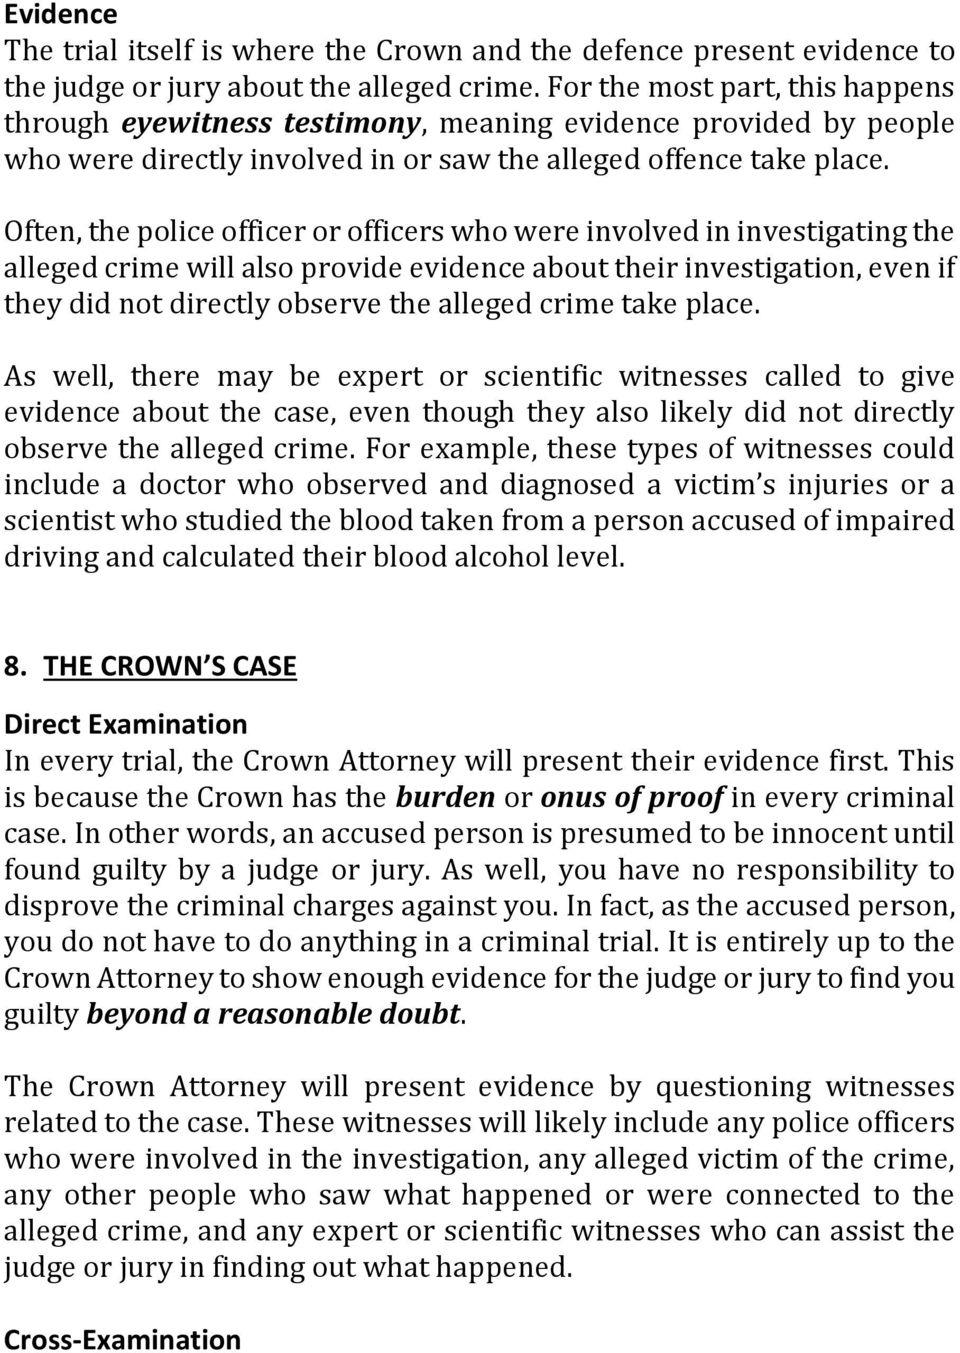 Often, the police officer or officers who were involved in investigating the alleged crime will also provide evidence about their investigation, even if they did not directly observe the alleged